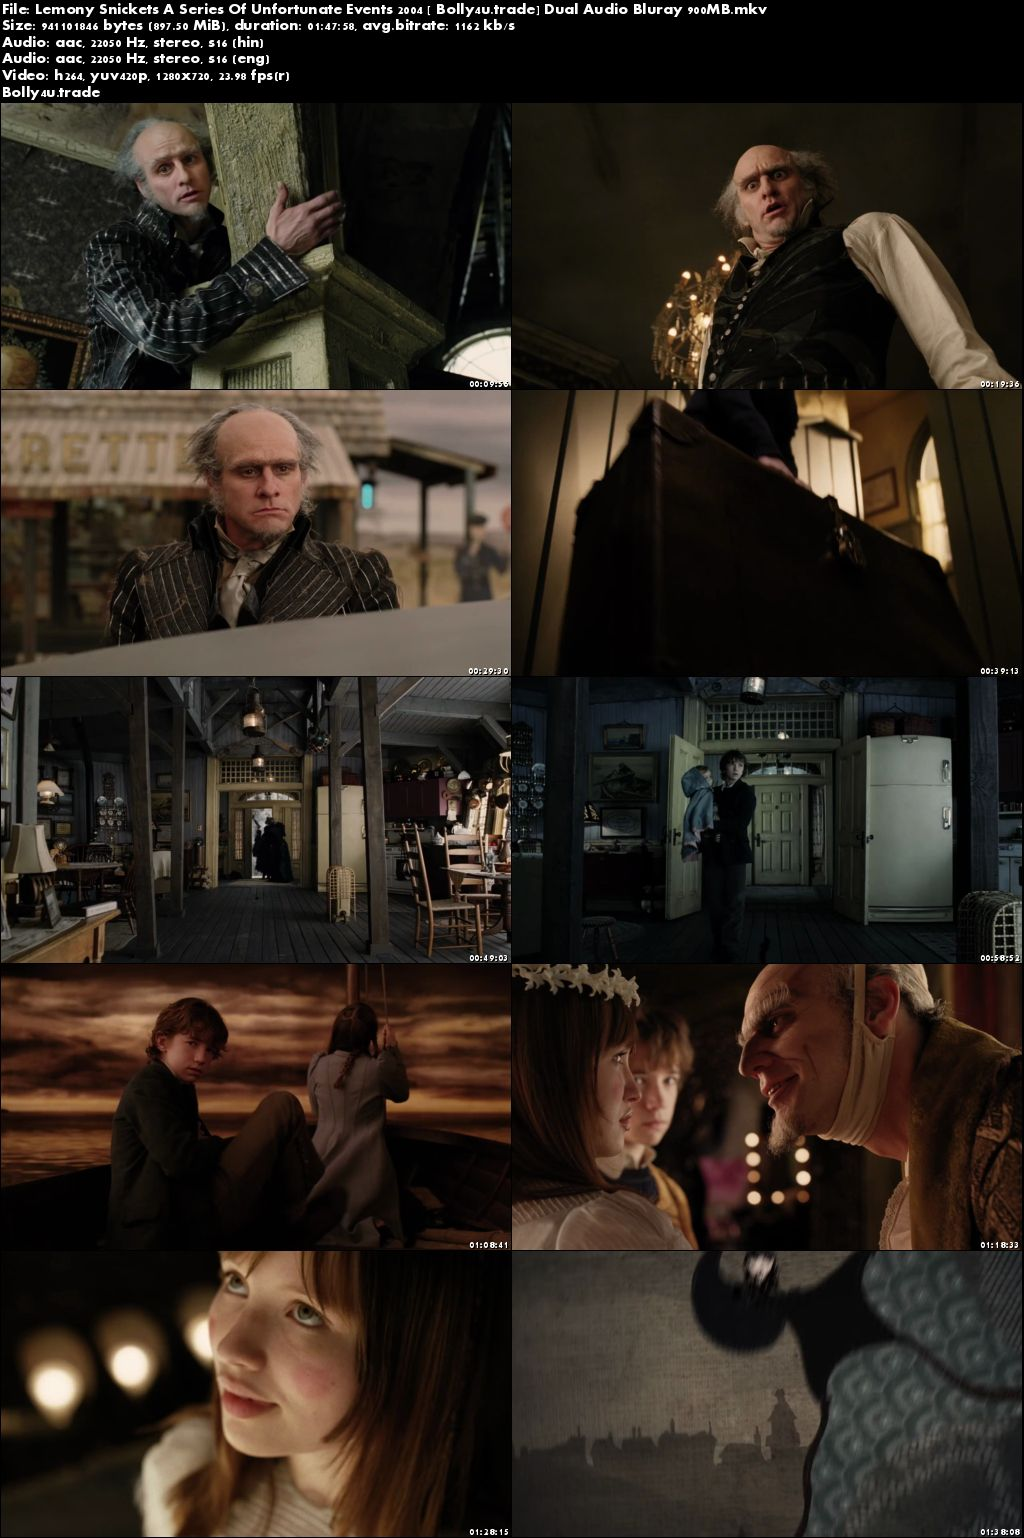 Lemony Snickets A Series Of Unfortunate Events 2004 BRRip 900Mb Hindi Dual Audio 720p Download